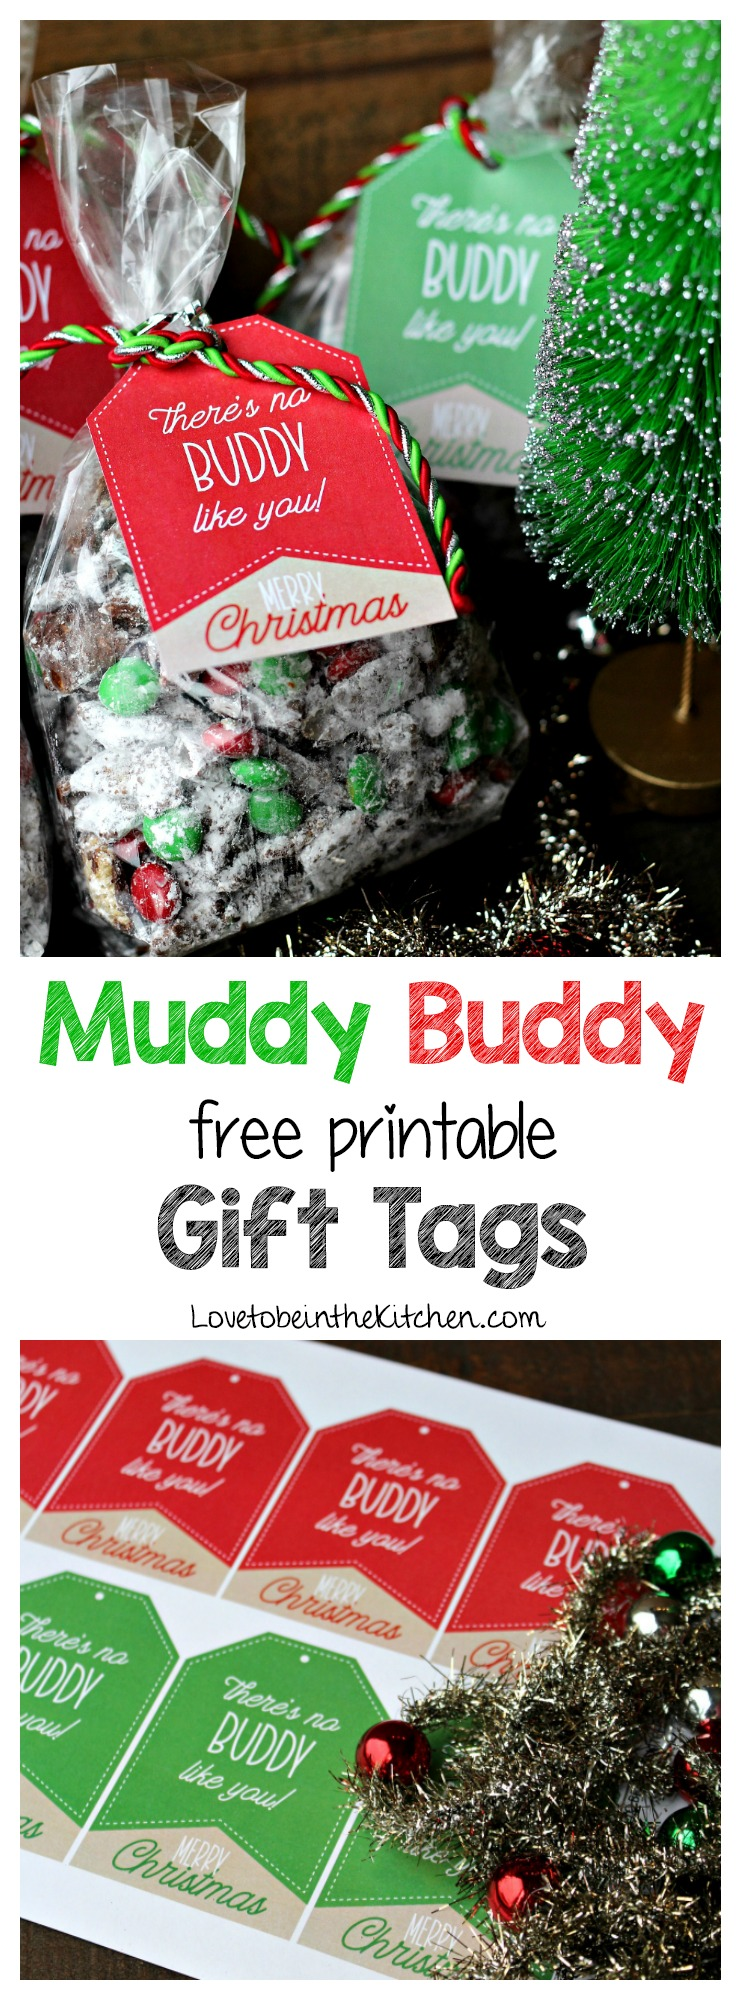 Muddy Buddy Free Printable Gift Tags